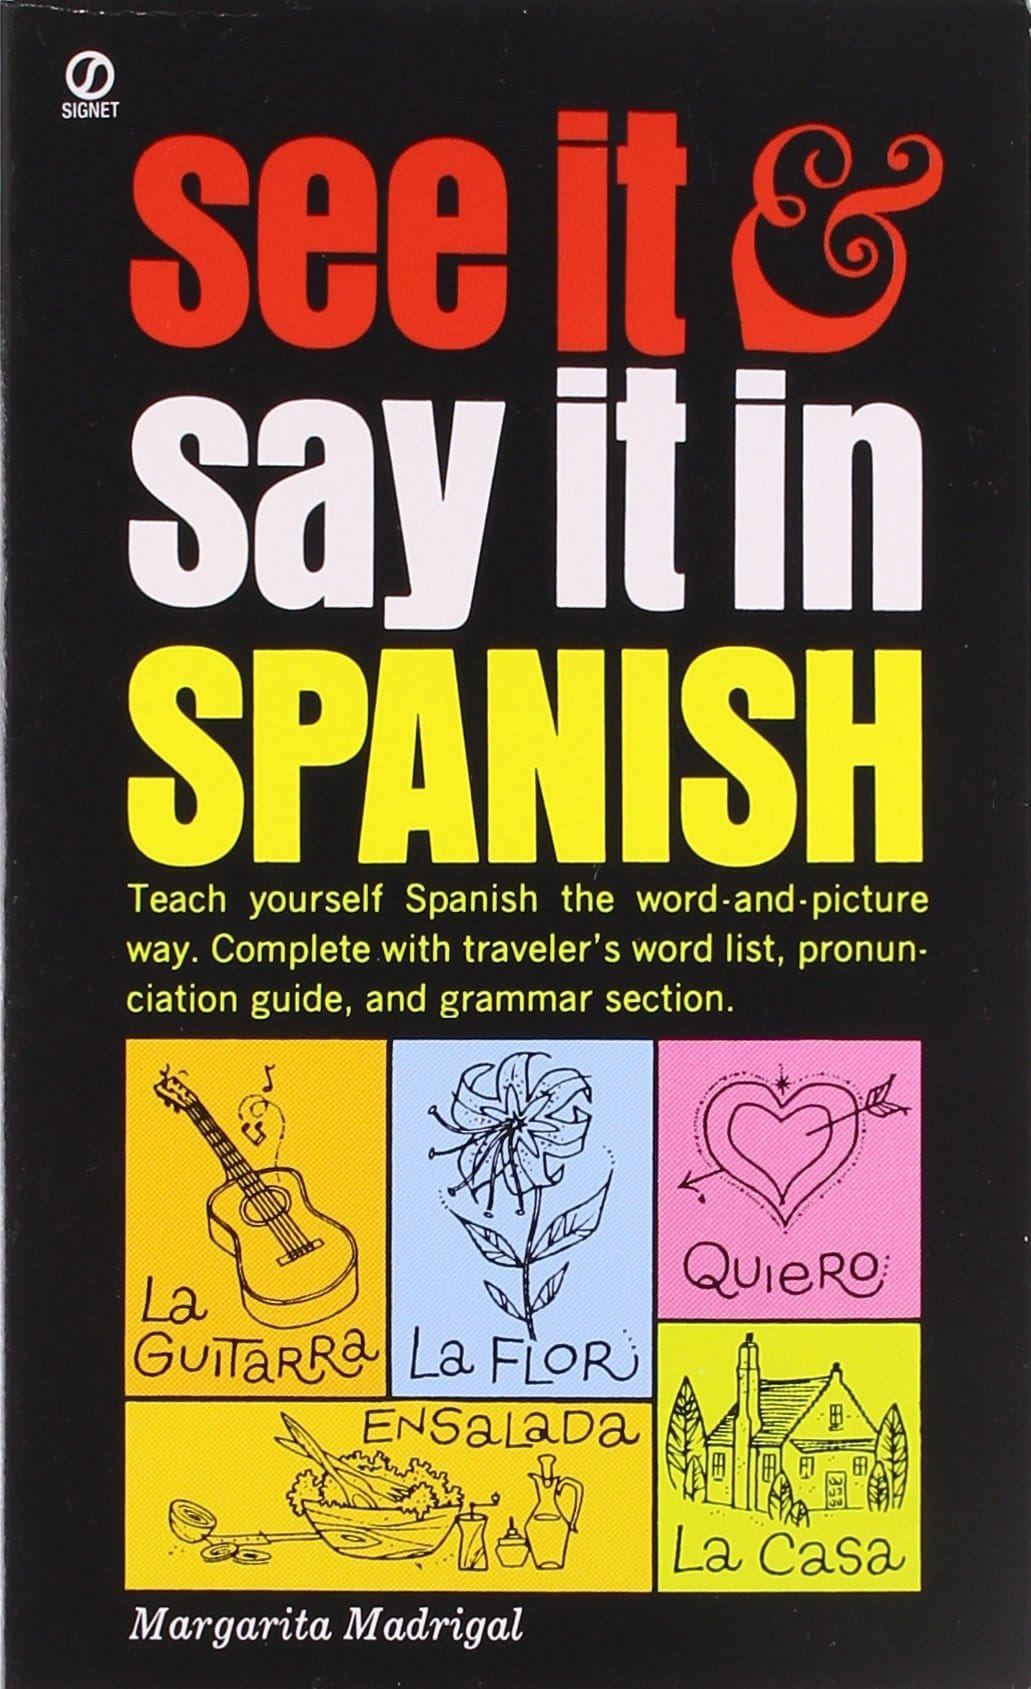 Workbooks learn spanish workbook pdf : The 8 Best Books for Learning Spanish Inside and Out